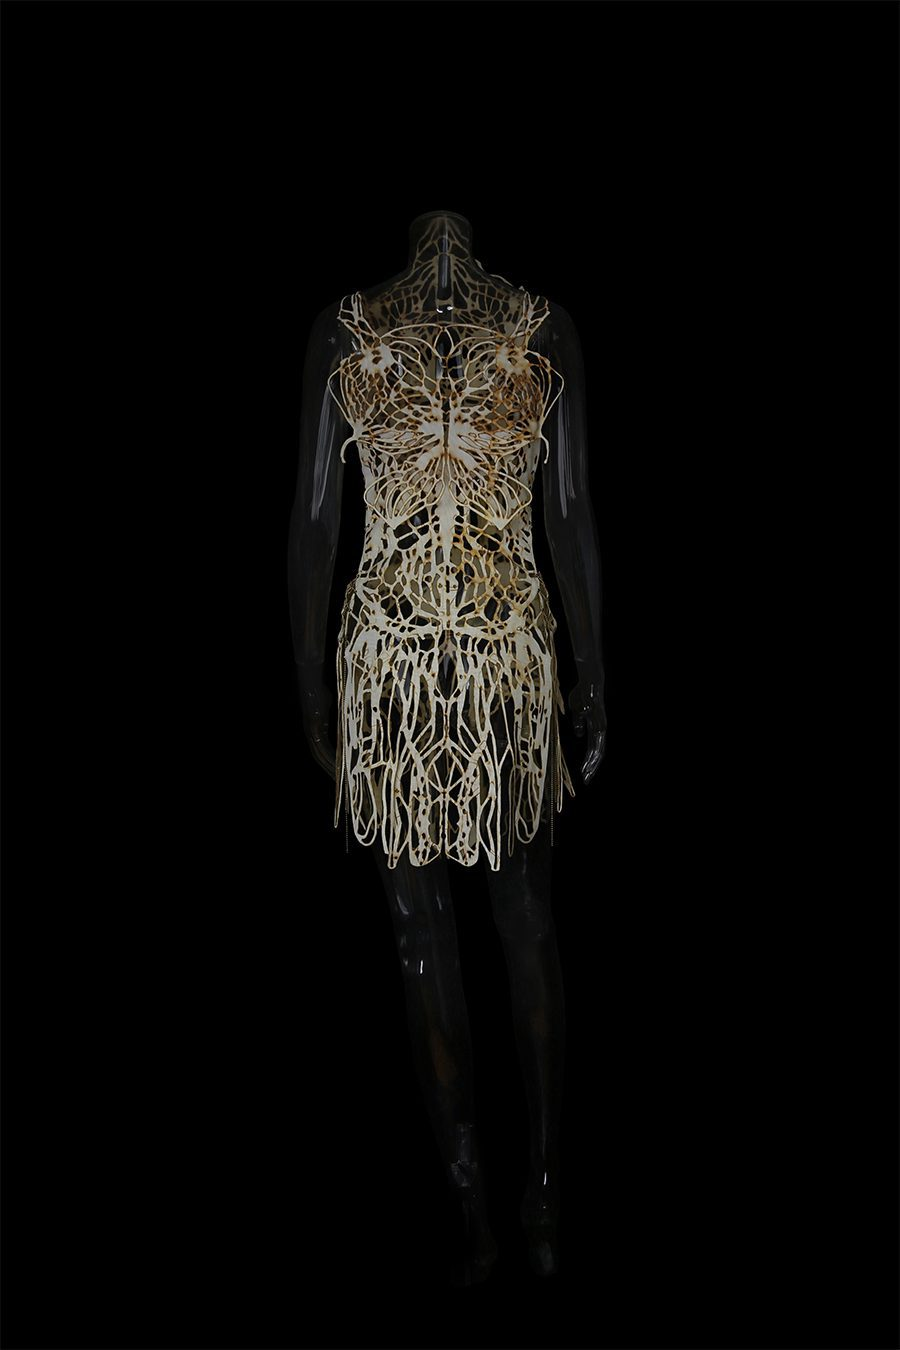 2017-Amy-Karle-Internal-Collection-cream-garment-based-on-tendons-and-ligaments-v2-02